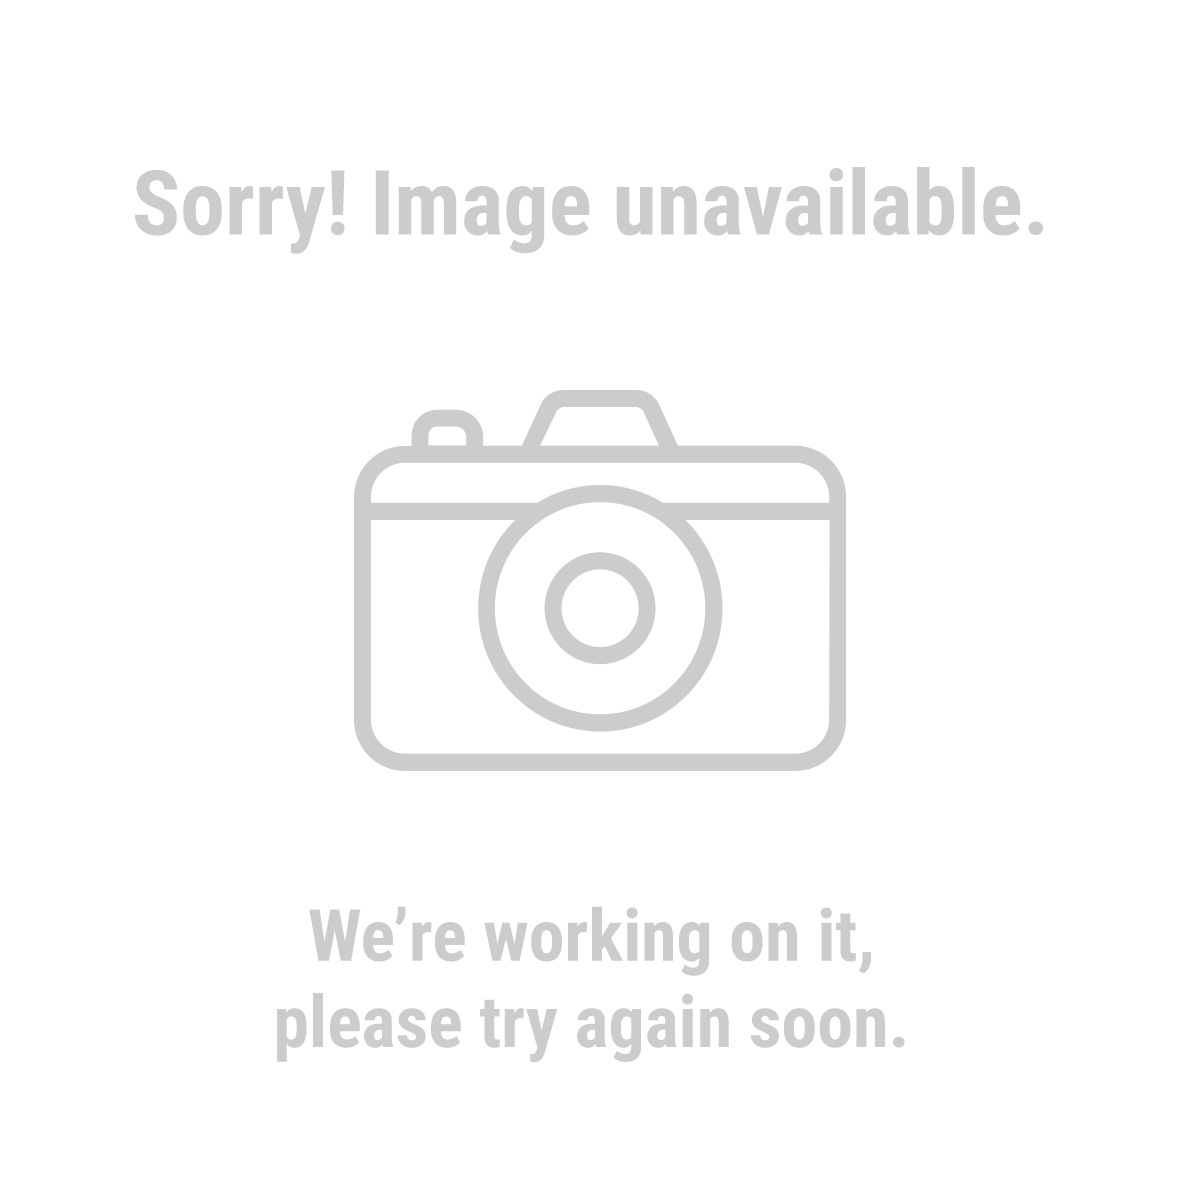 Haul-Master® 61521 4.80/4.00-8 Four ply rated Tire with 4 Lug Rim